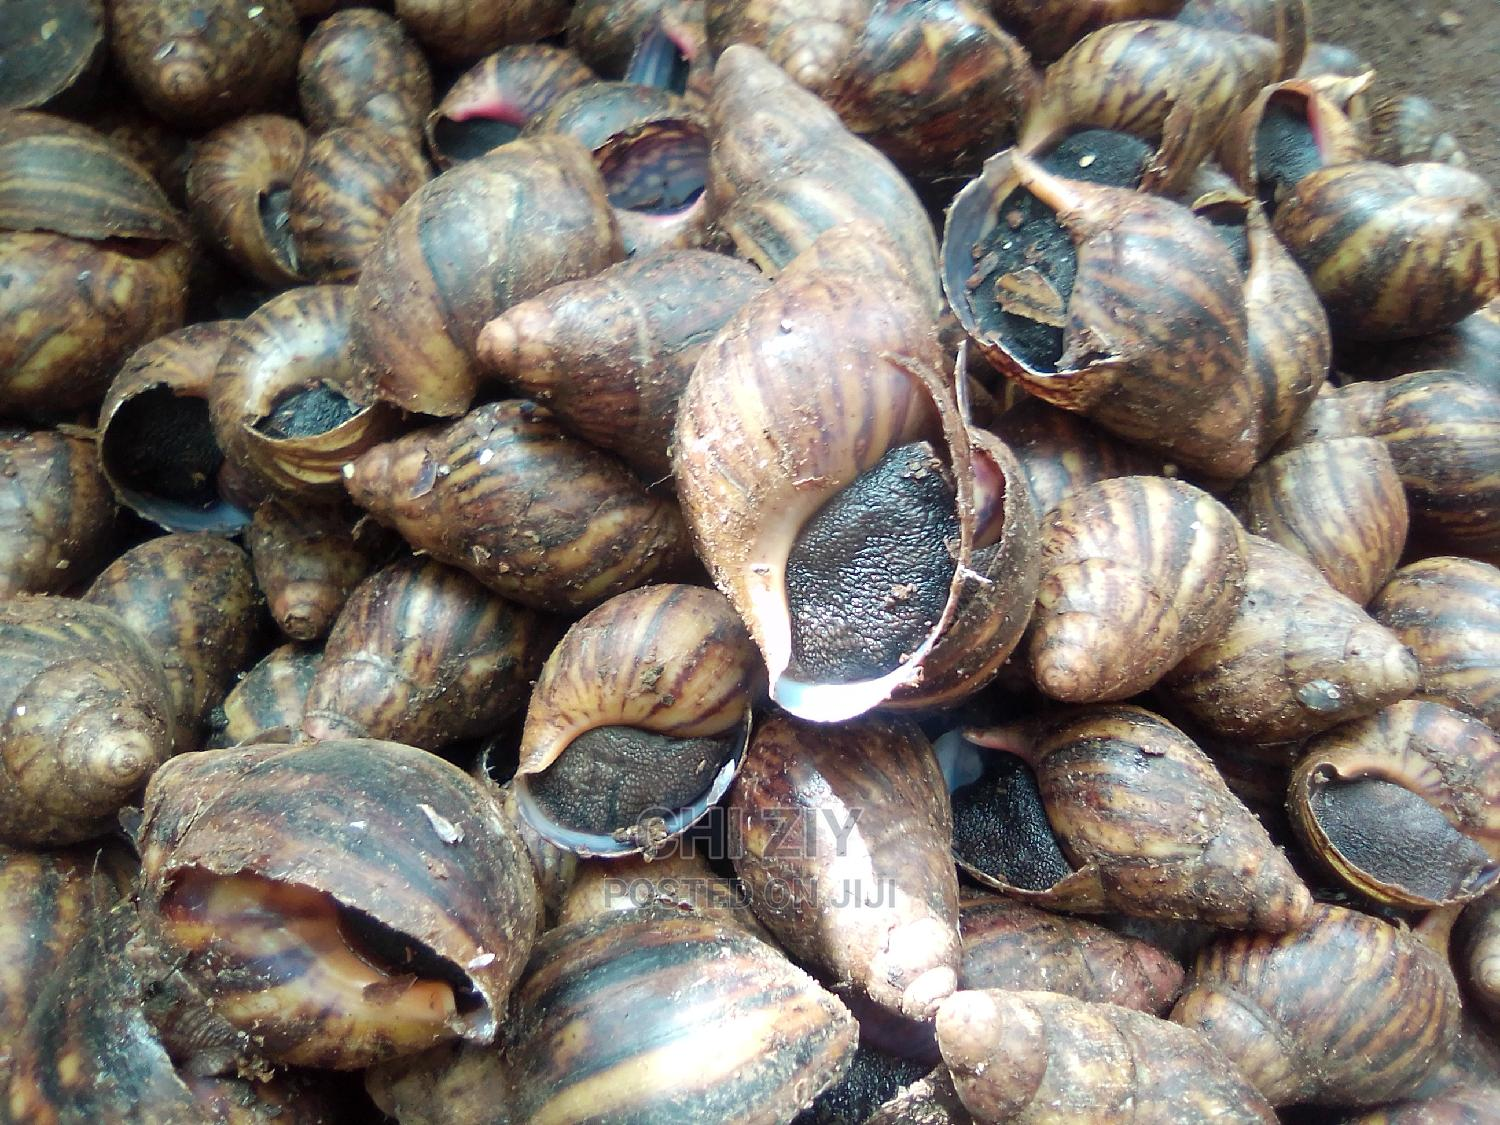 Healthy Snails for Sales | Other Animals for sale in Ado-Odo/Ota, Ogun State, Nigeria